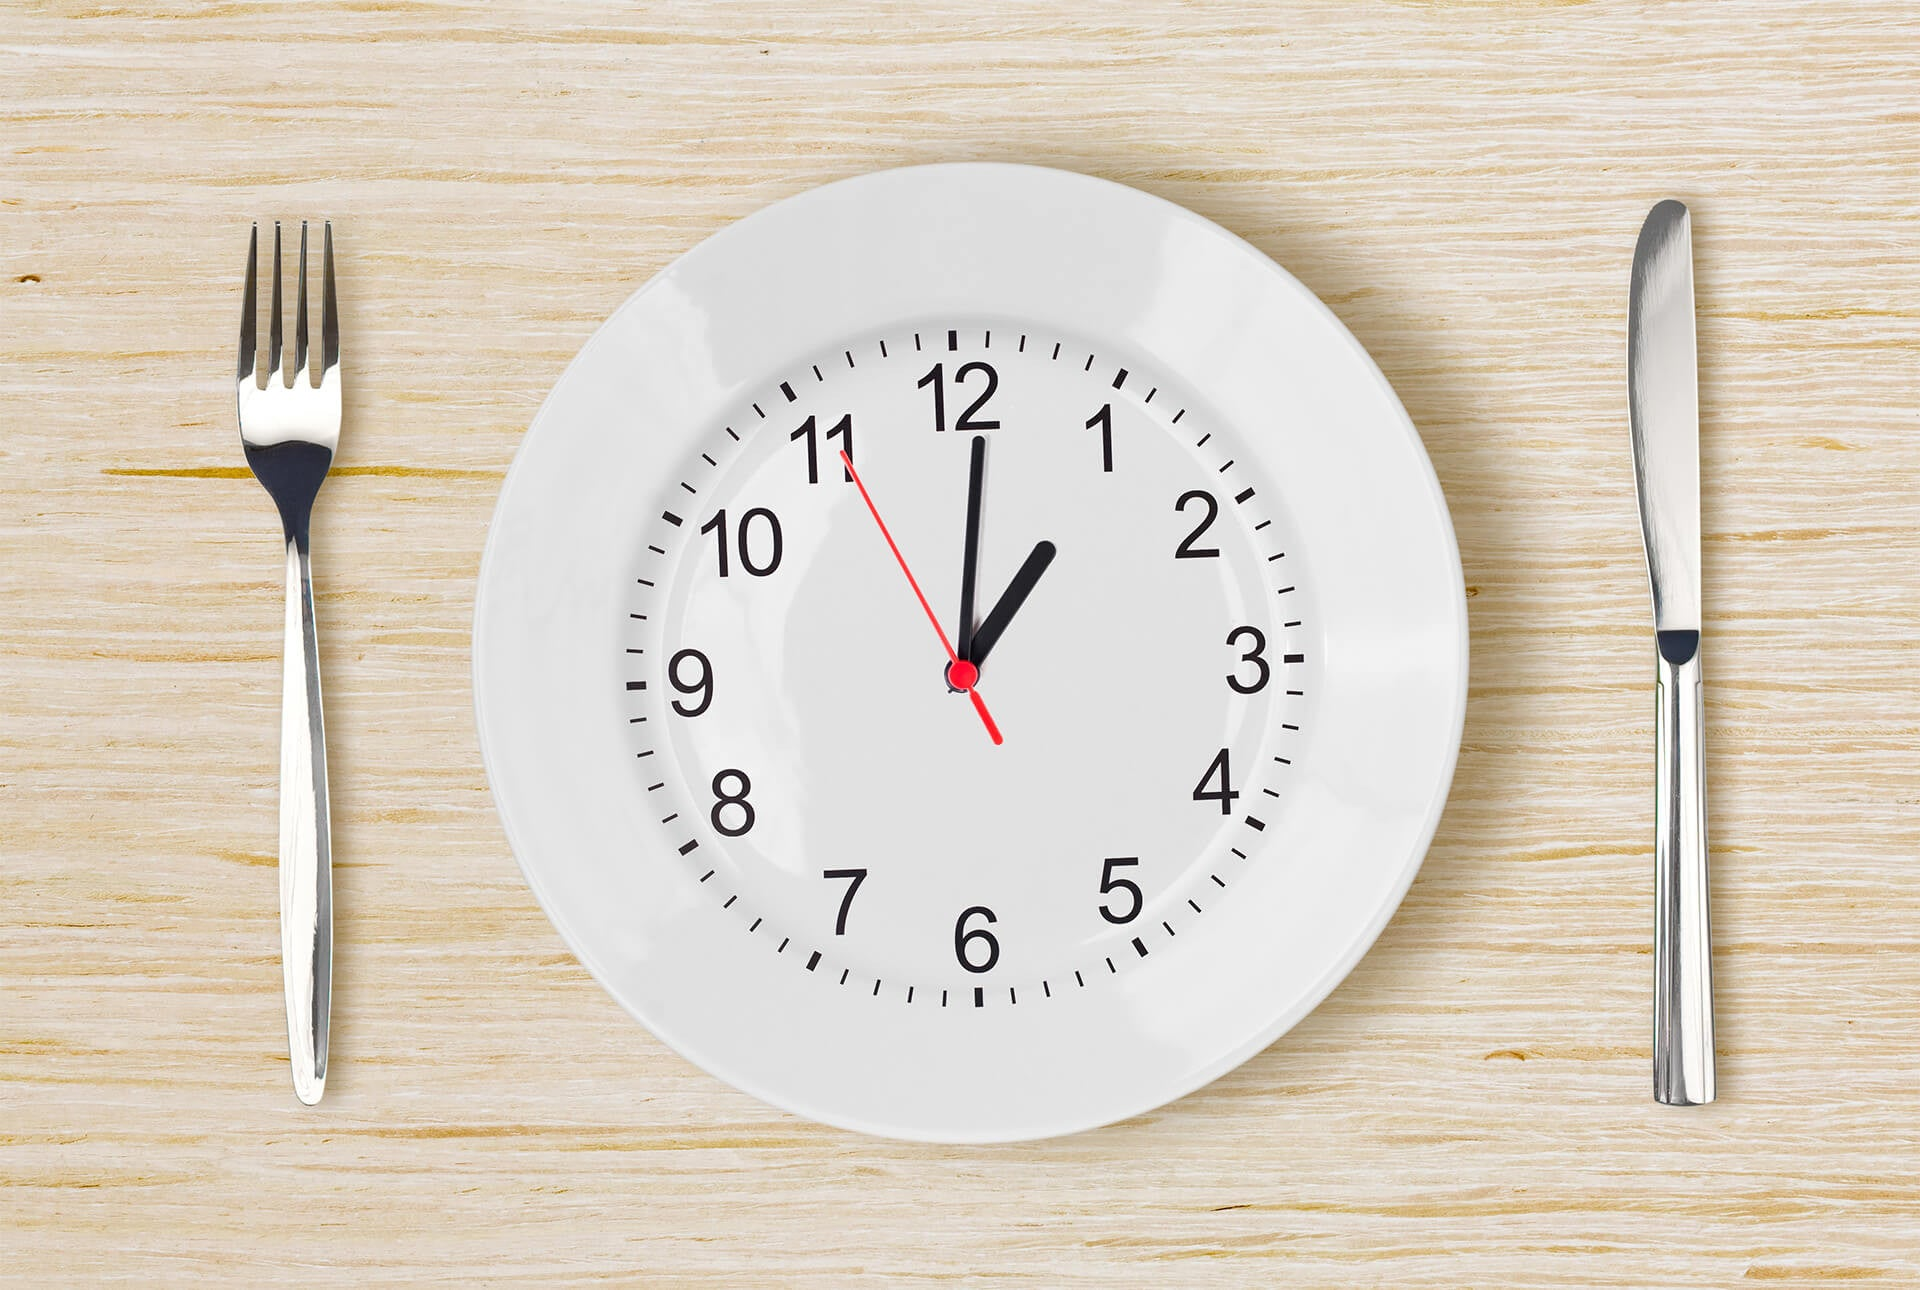 INTERMITTENT FASTING AND COGNITION